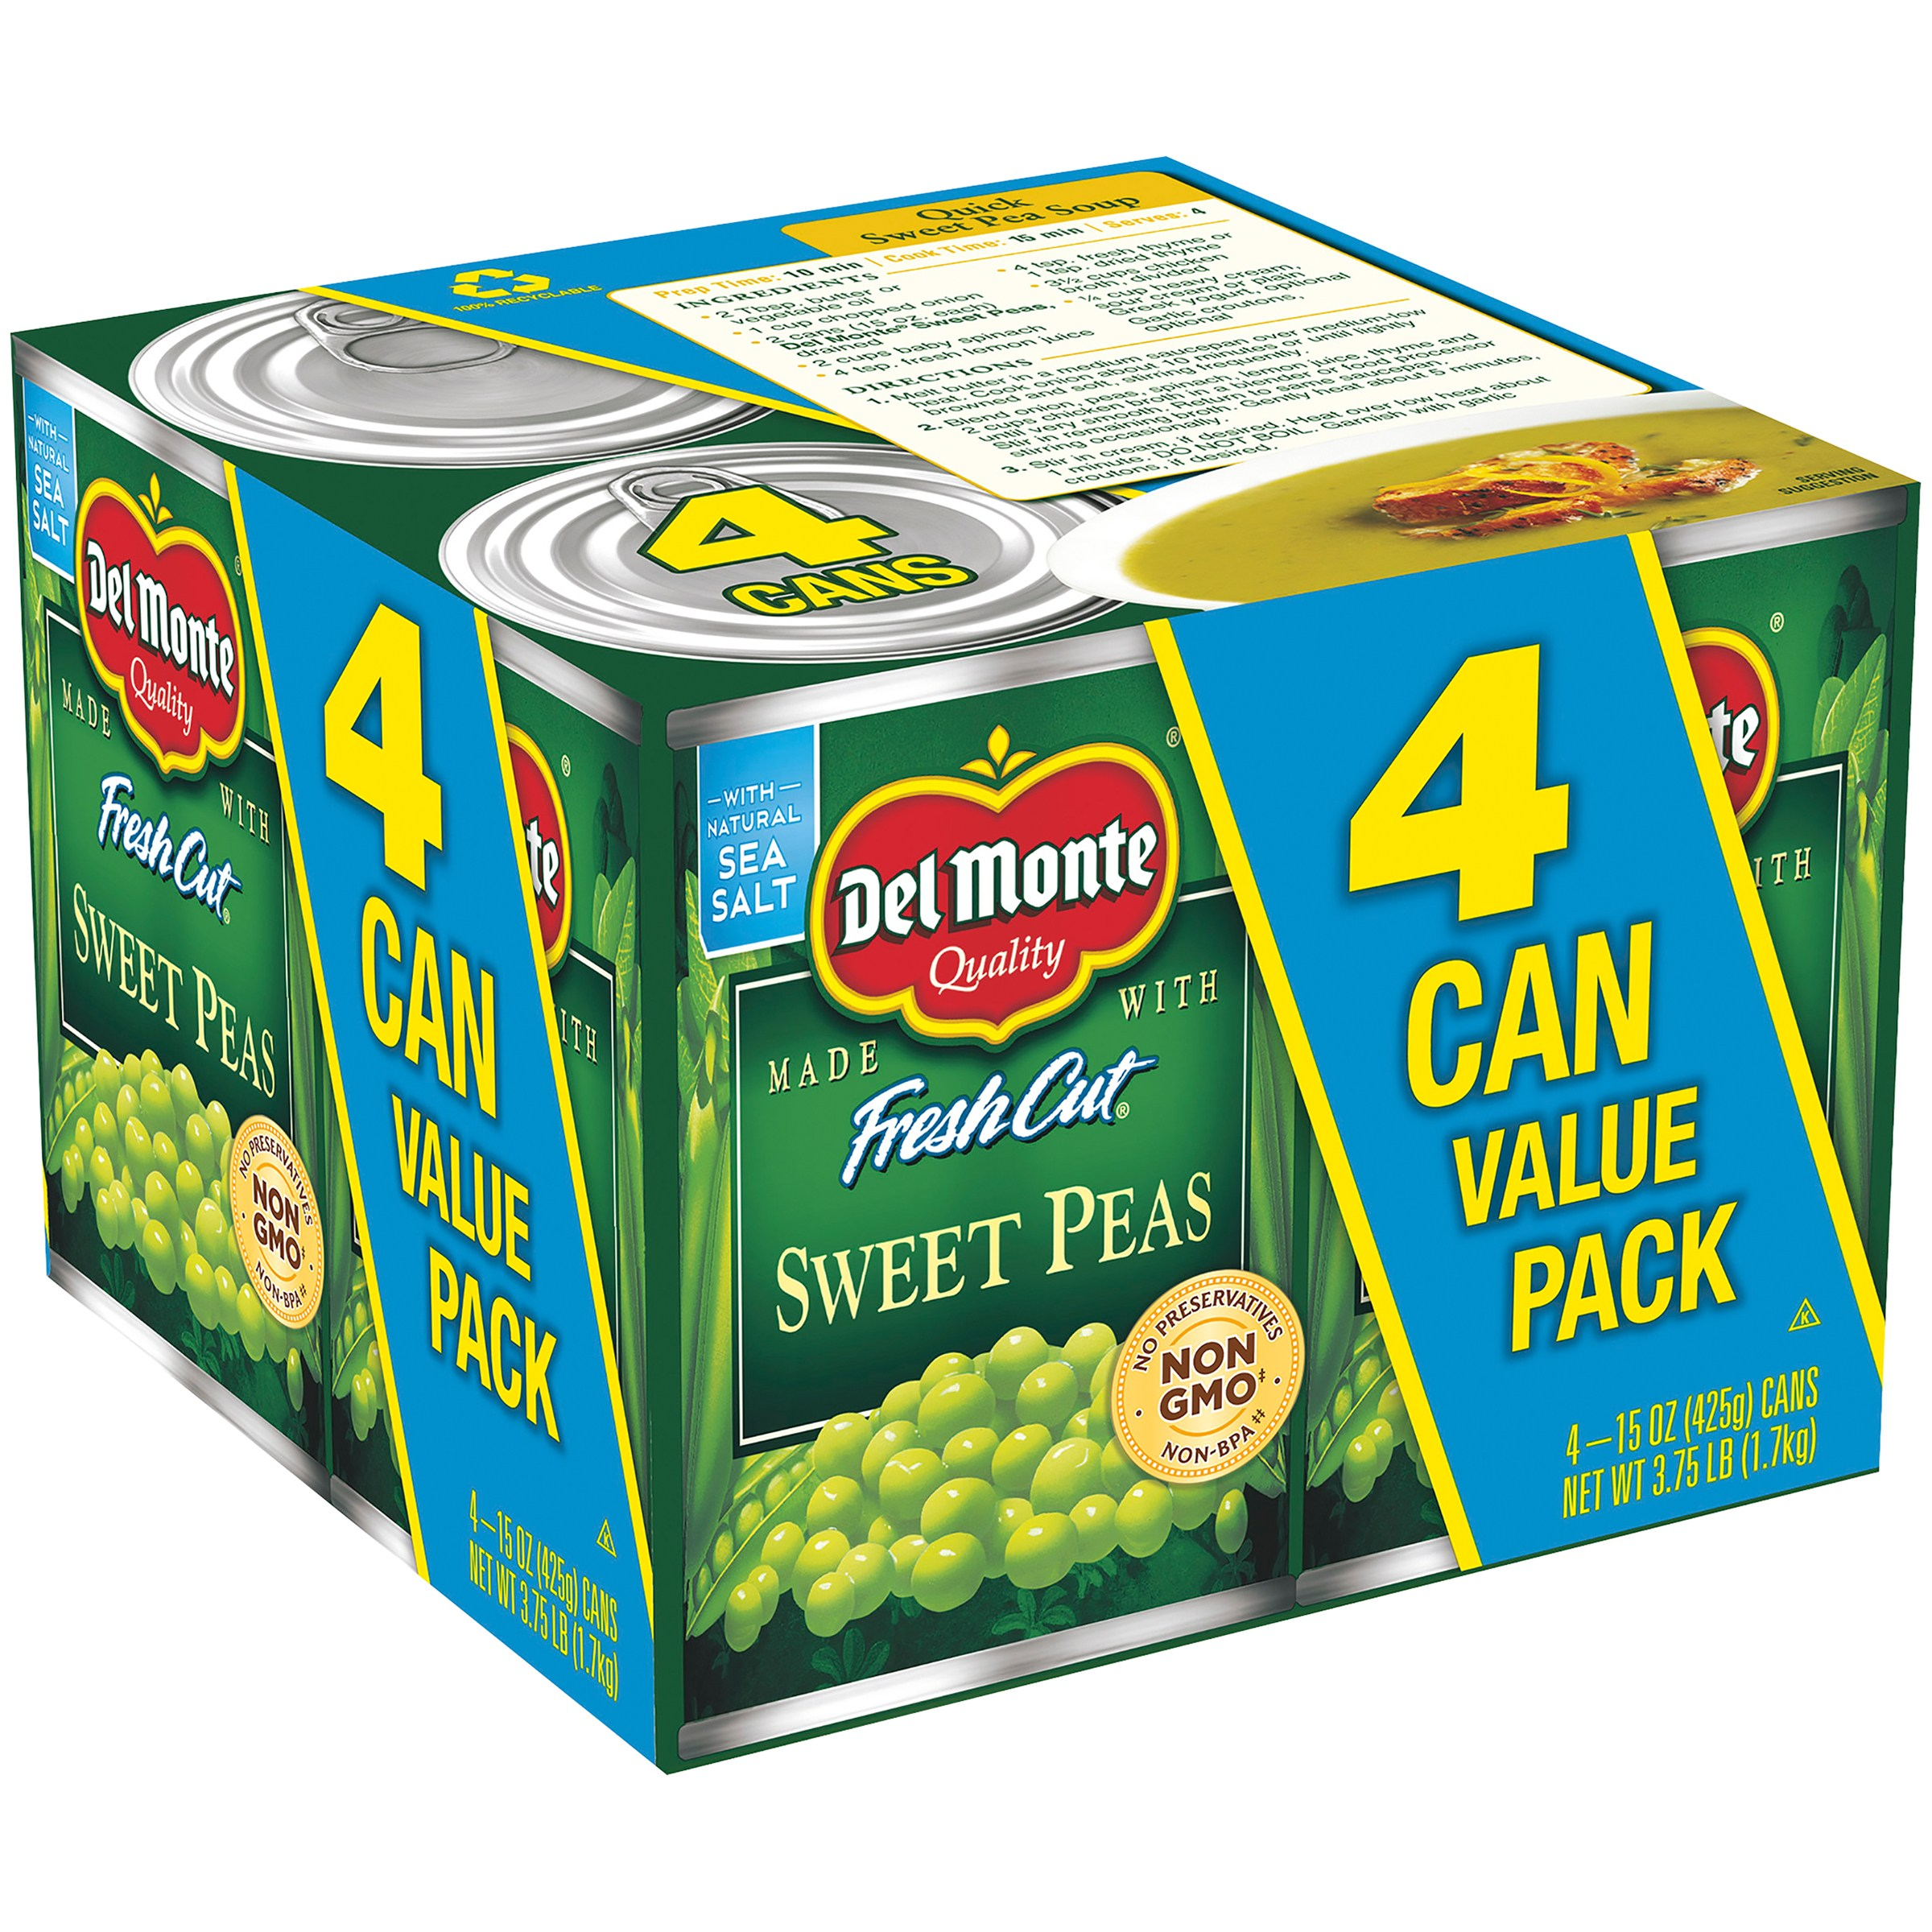 Del Monte Fresh Cut Sweet Peas, 15 Oz, 4 Count Box